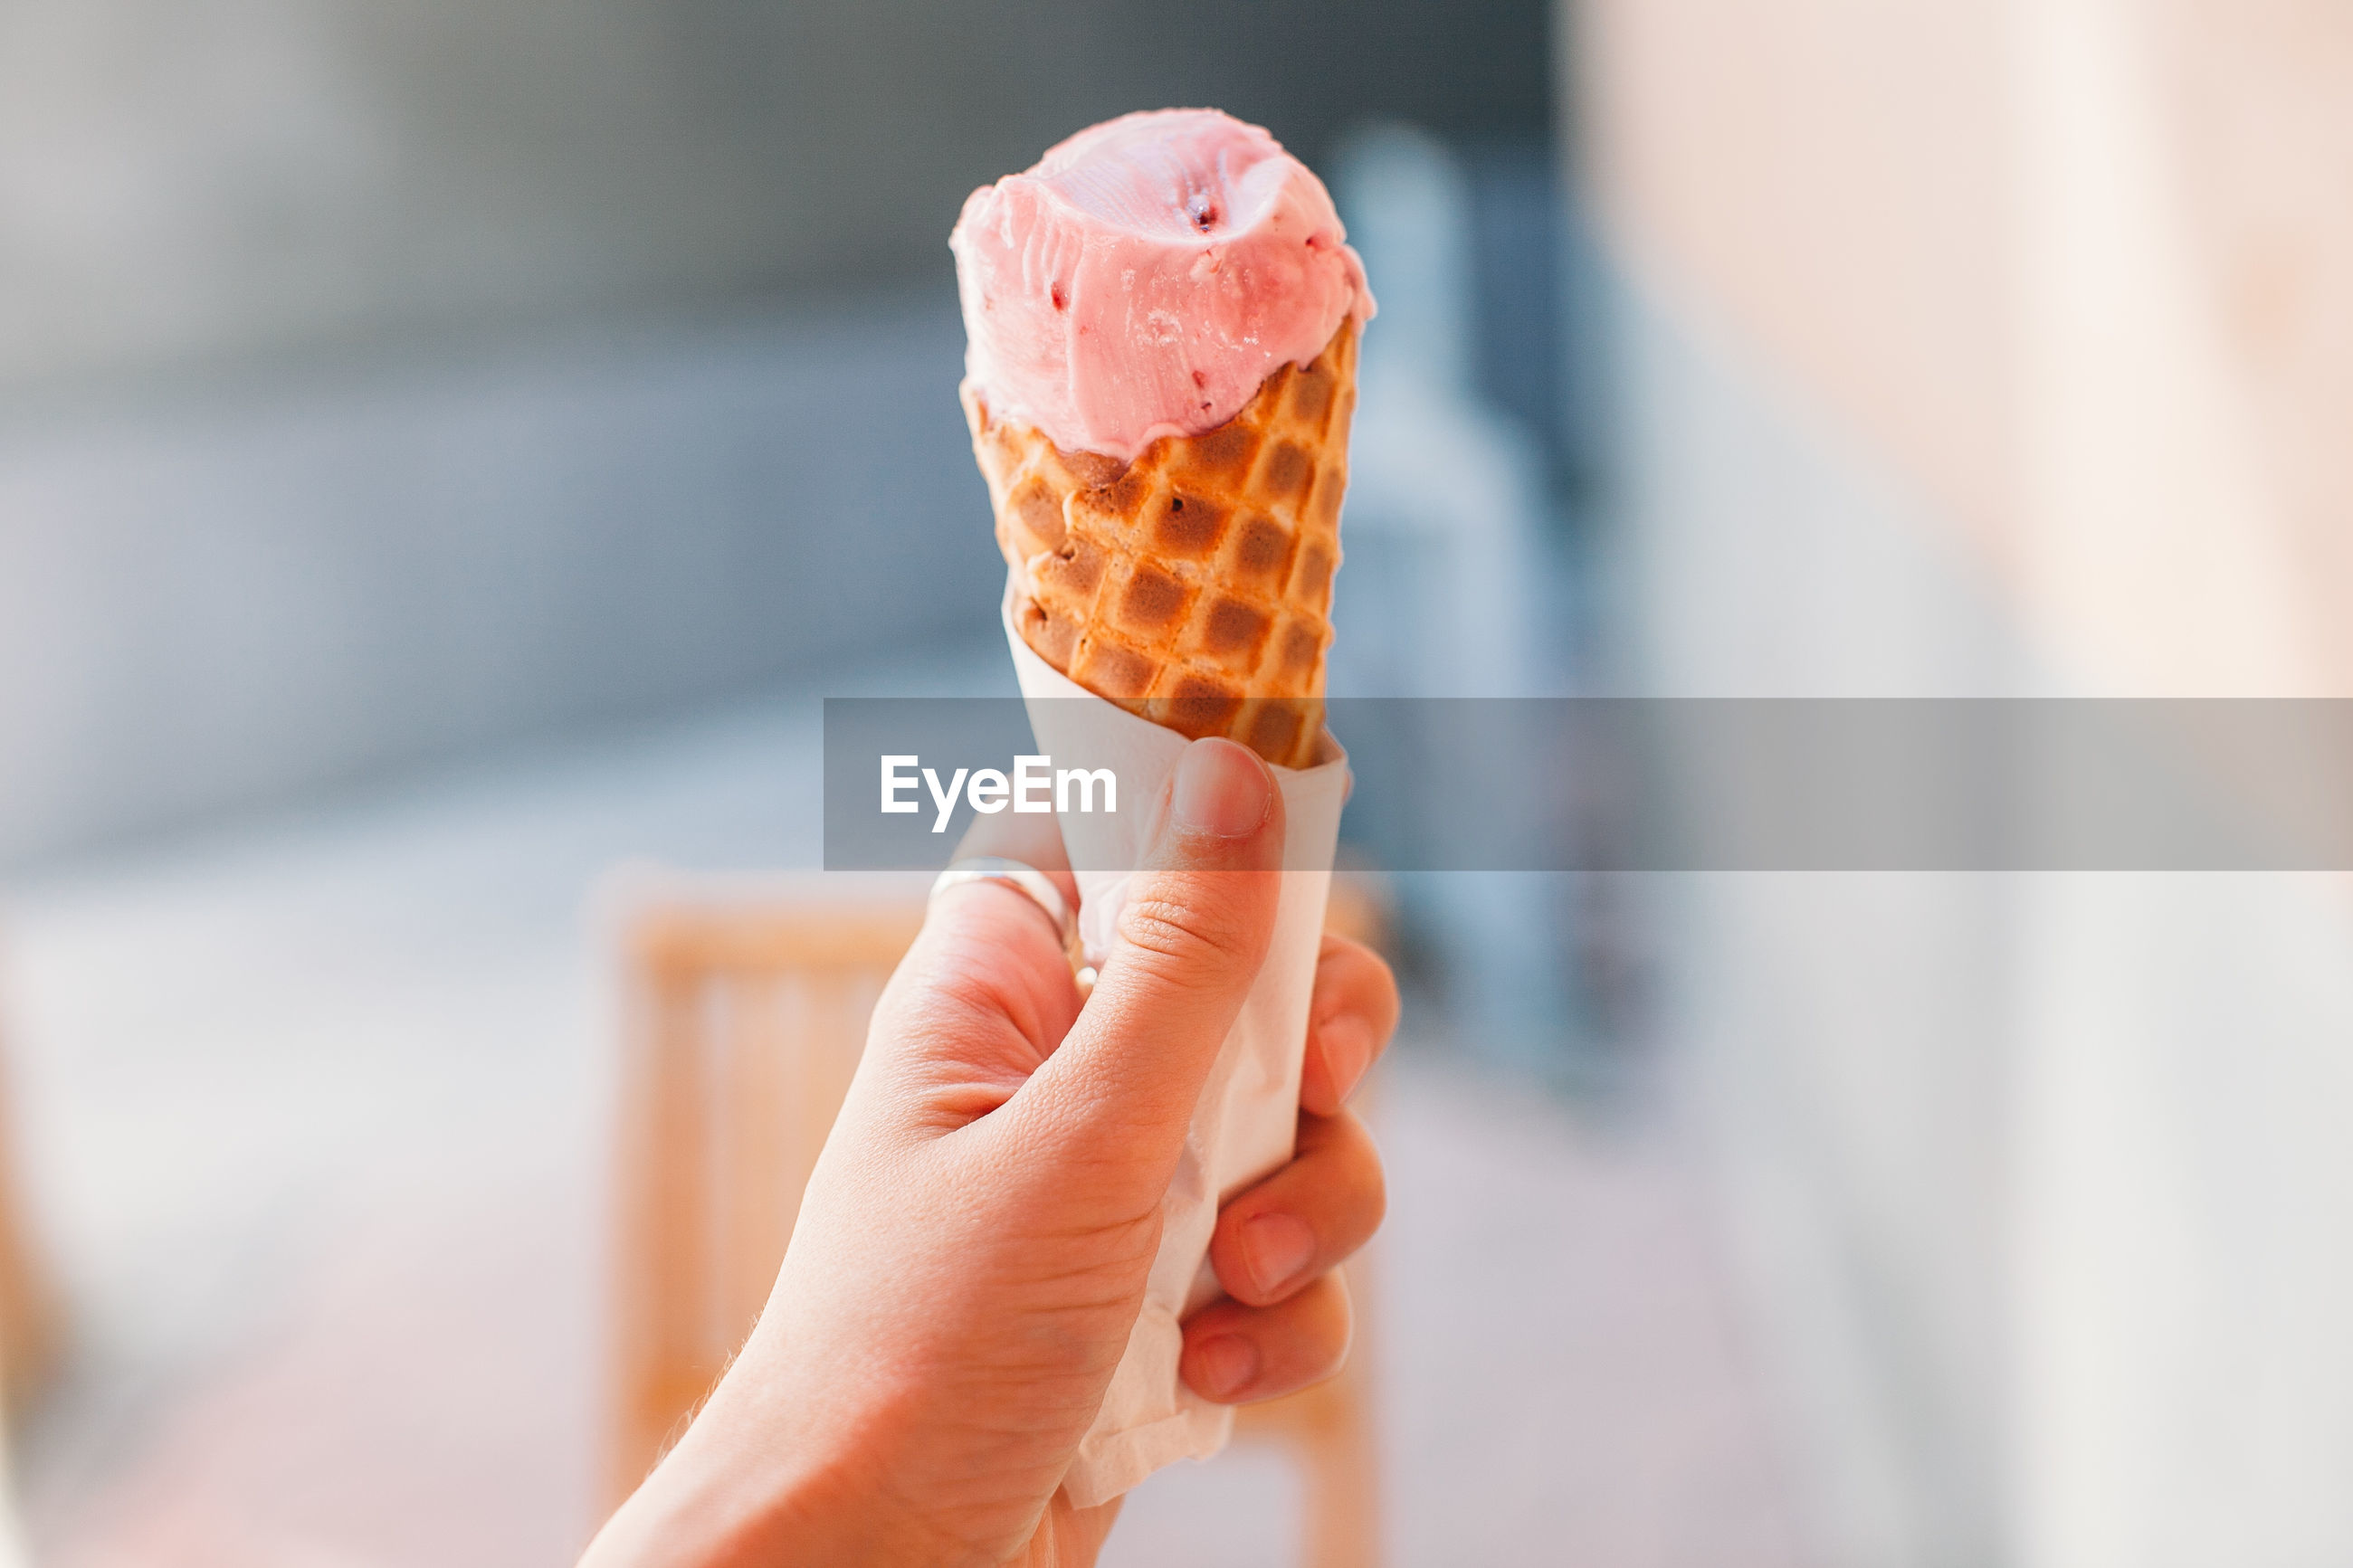 Cropped image of ice cream cone in hand